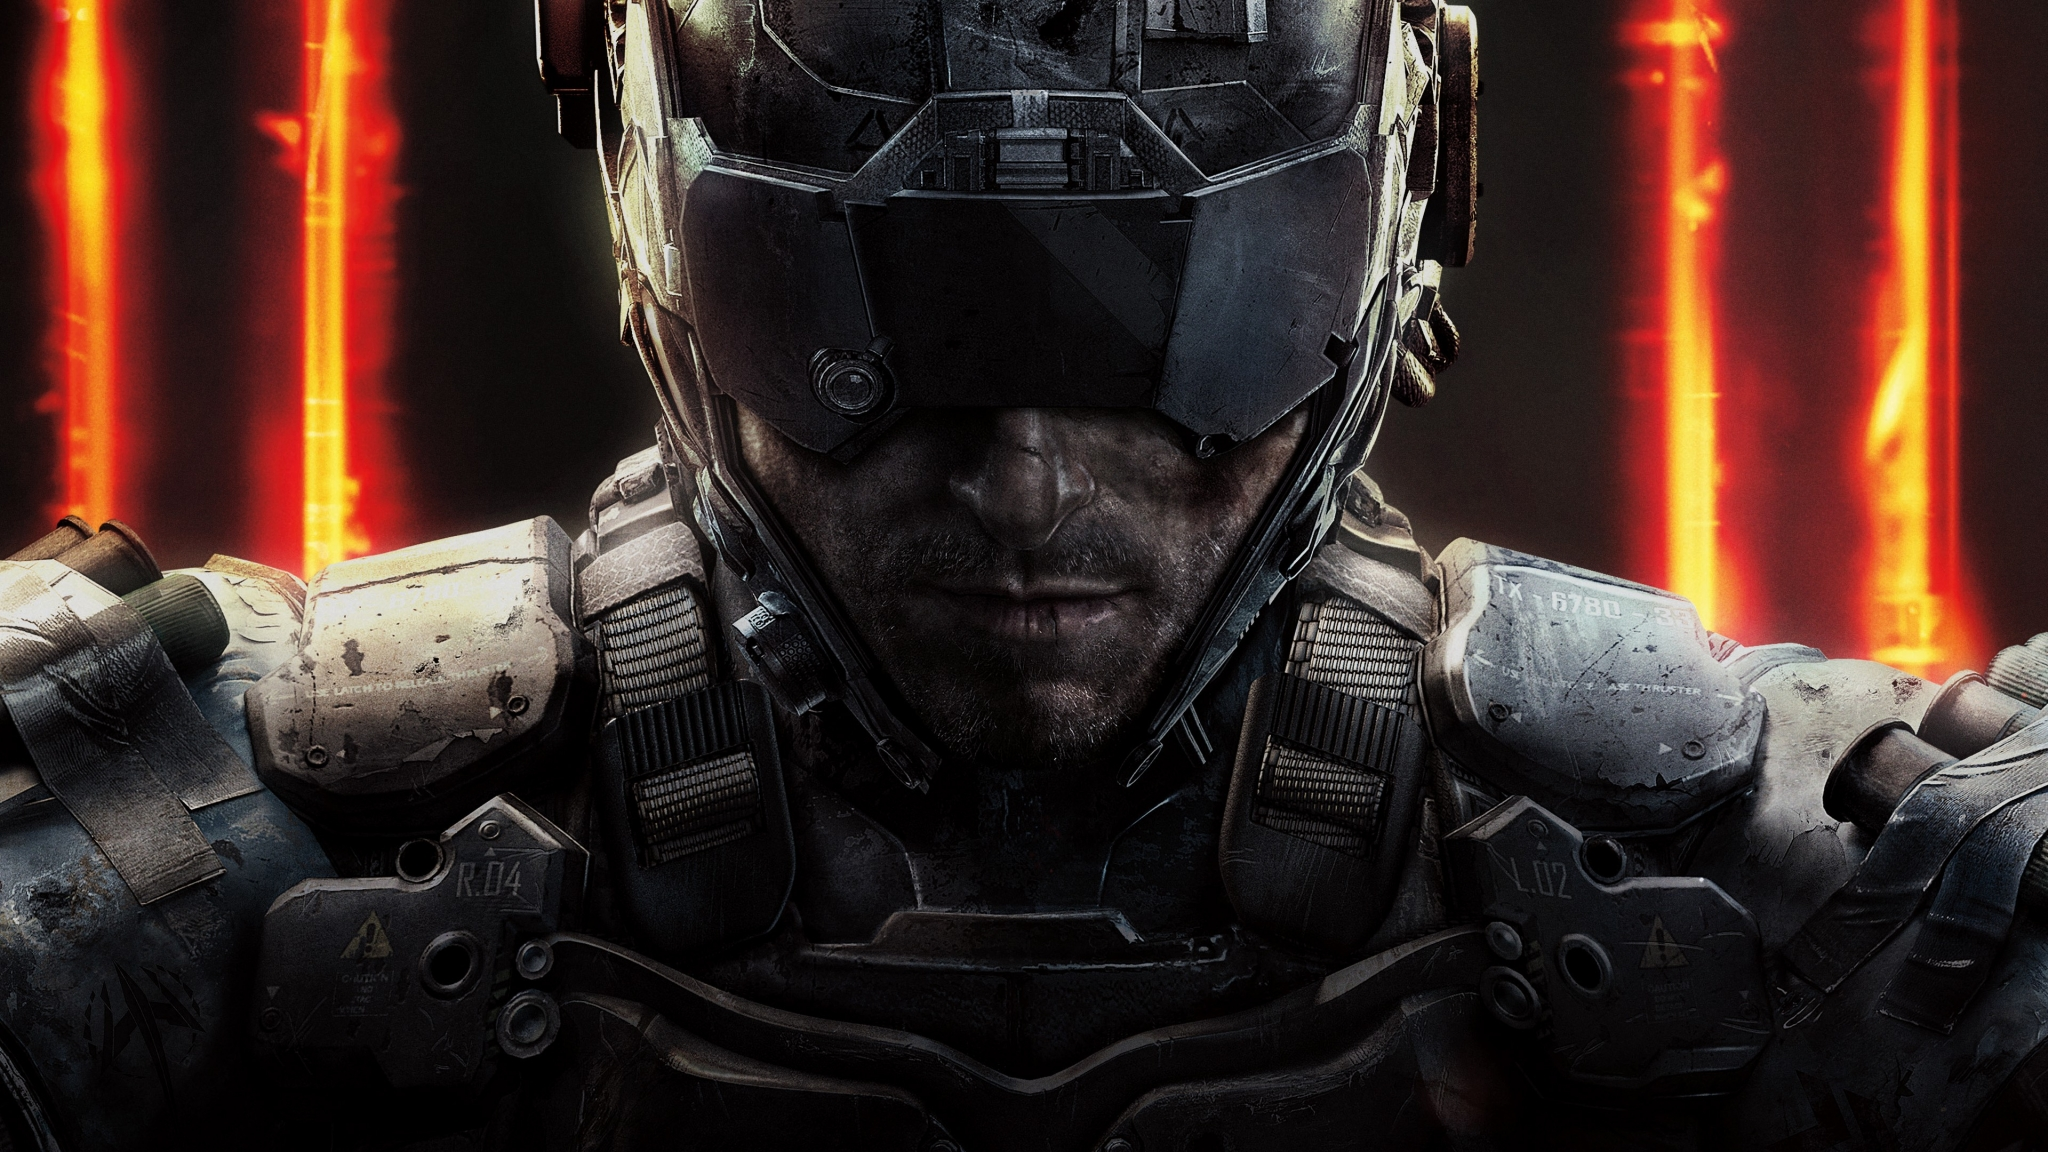 Call of Duty: Black Ops 3 HD wallpapers